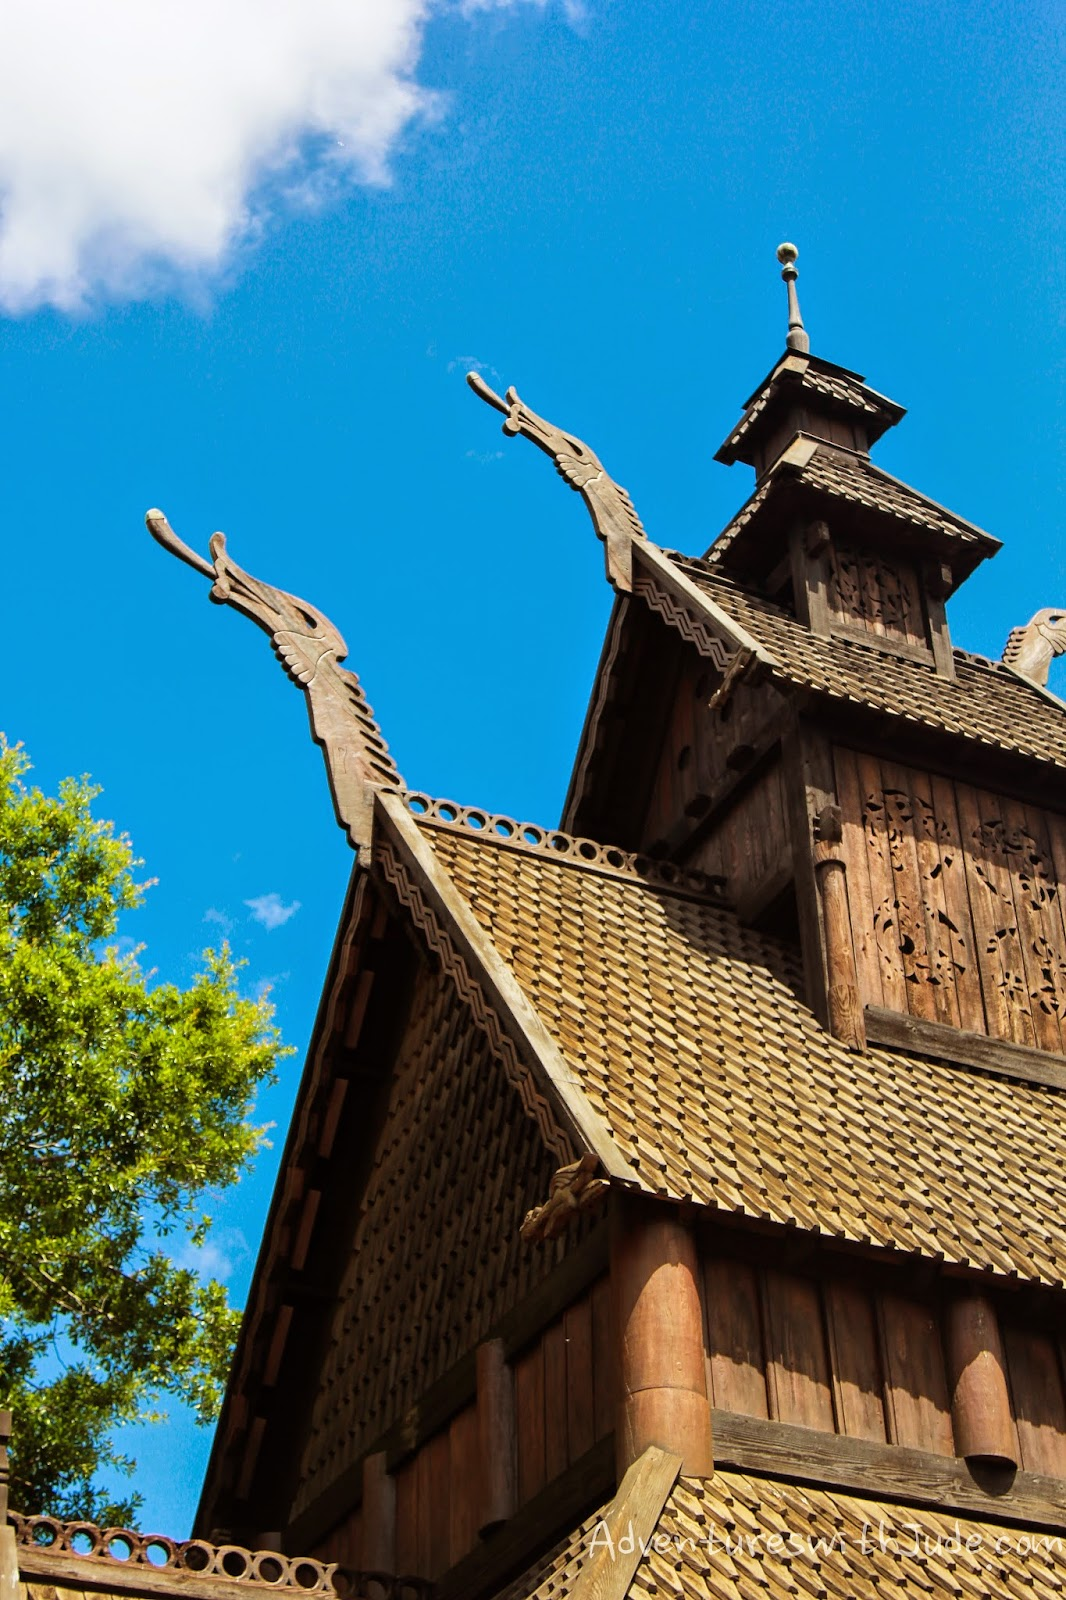 Viking prowls on Stave Church roof